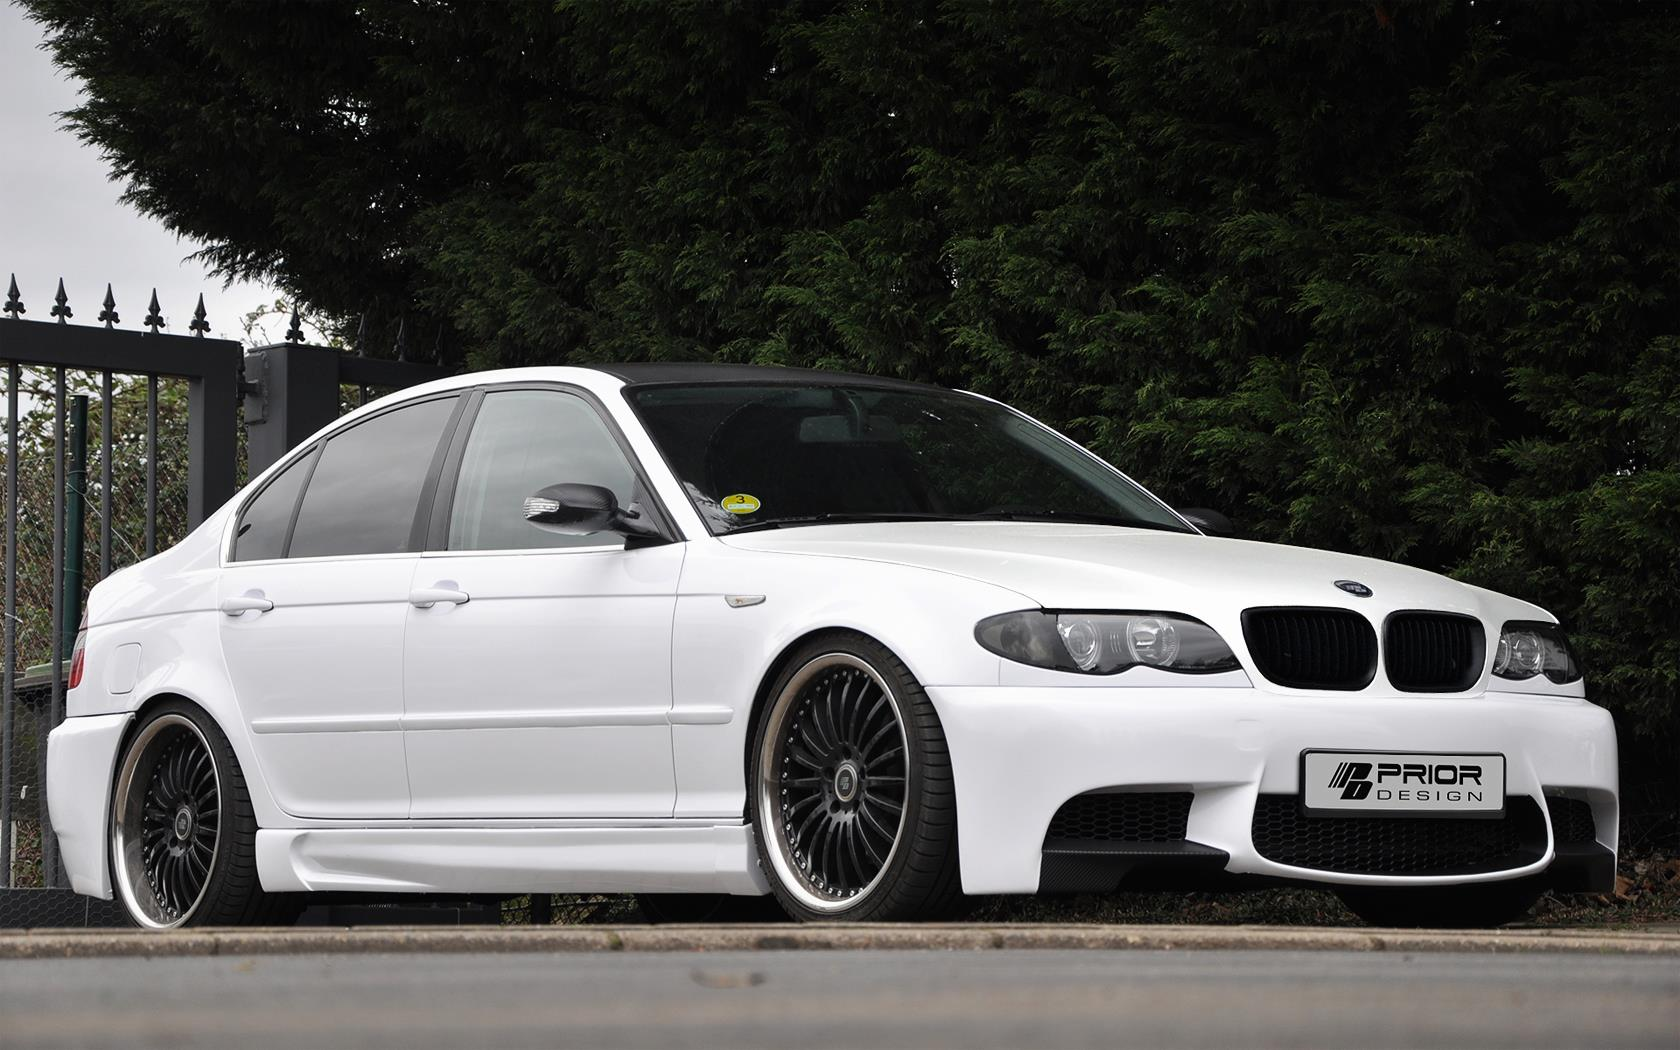 prior design bmw 3 series e46 m3 more flexible and stable. Black Bedroom Furniture Sets. Home Design Ideas